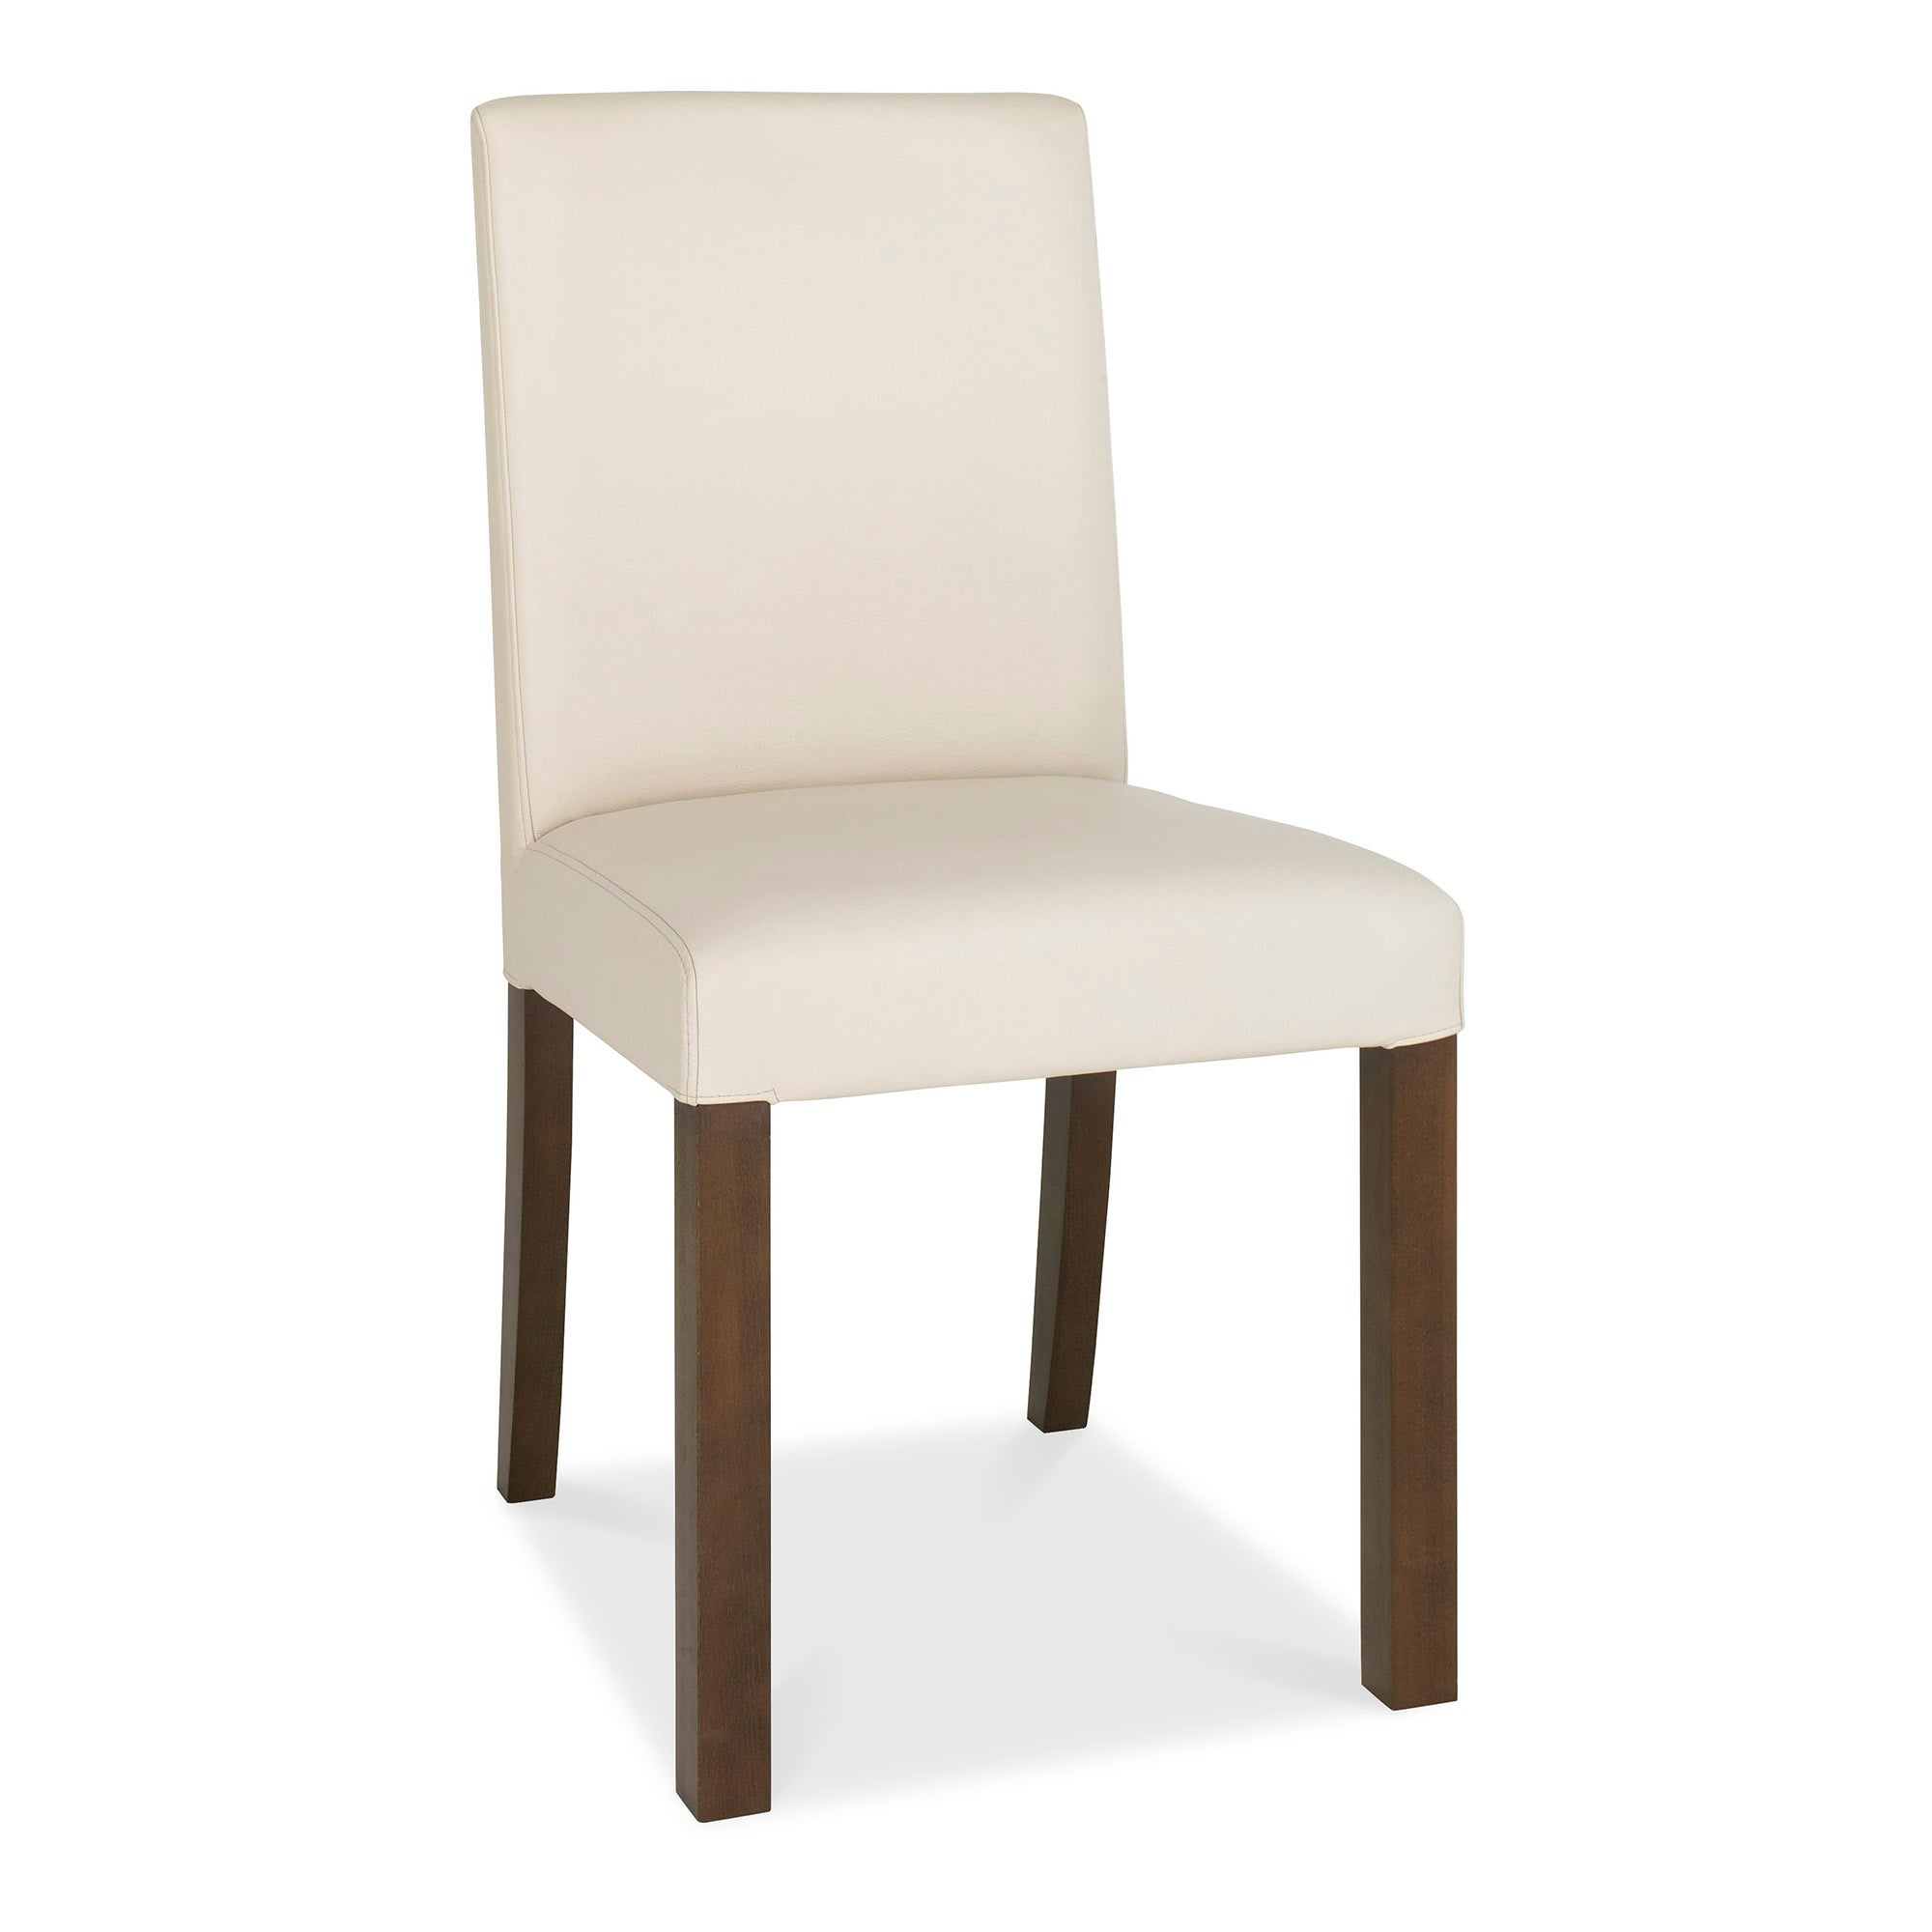 Wade Walnut Pair of Ivory Upholstered Chairs